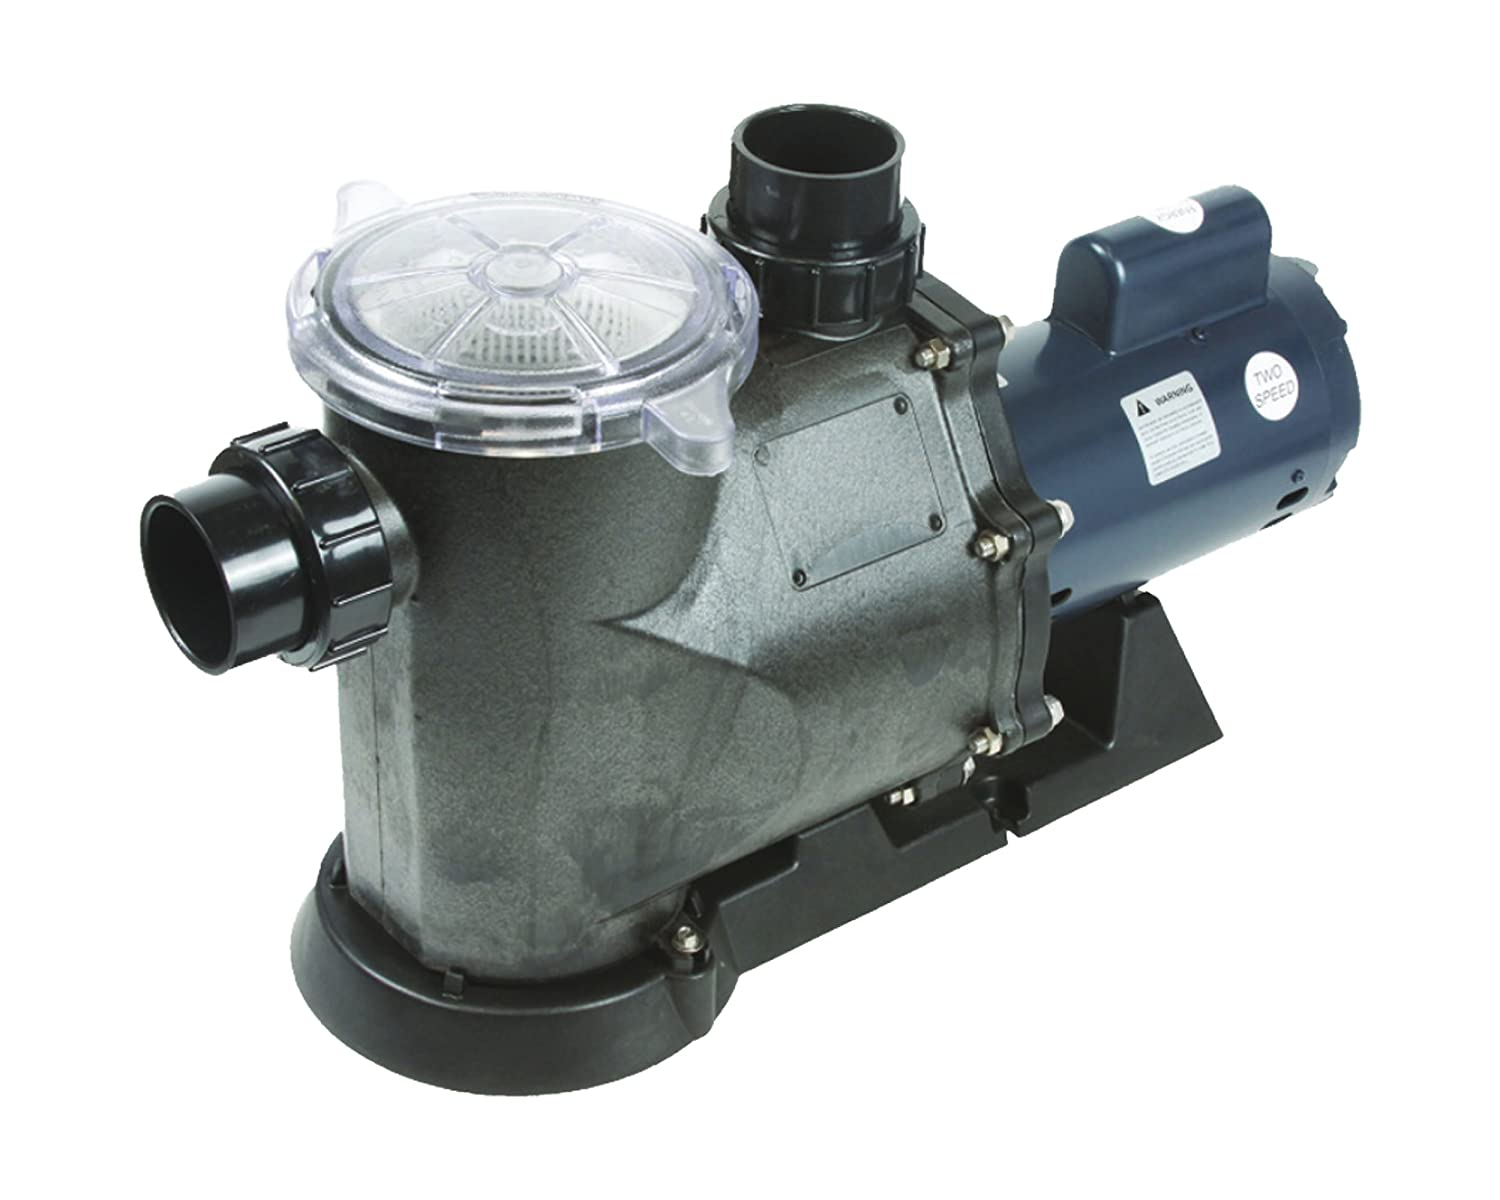 Pond Pump Evolution Series ESS Hurricane 3.7 amps 4680 GPH Best Choice for Aquatic Pond Builders